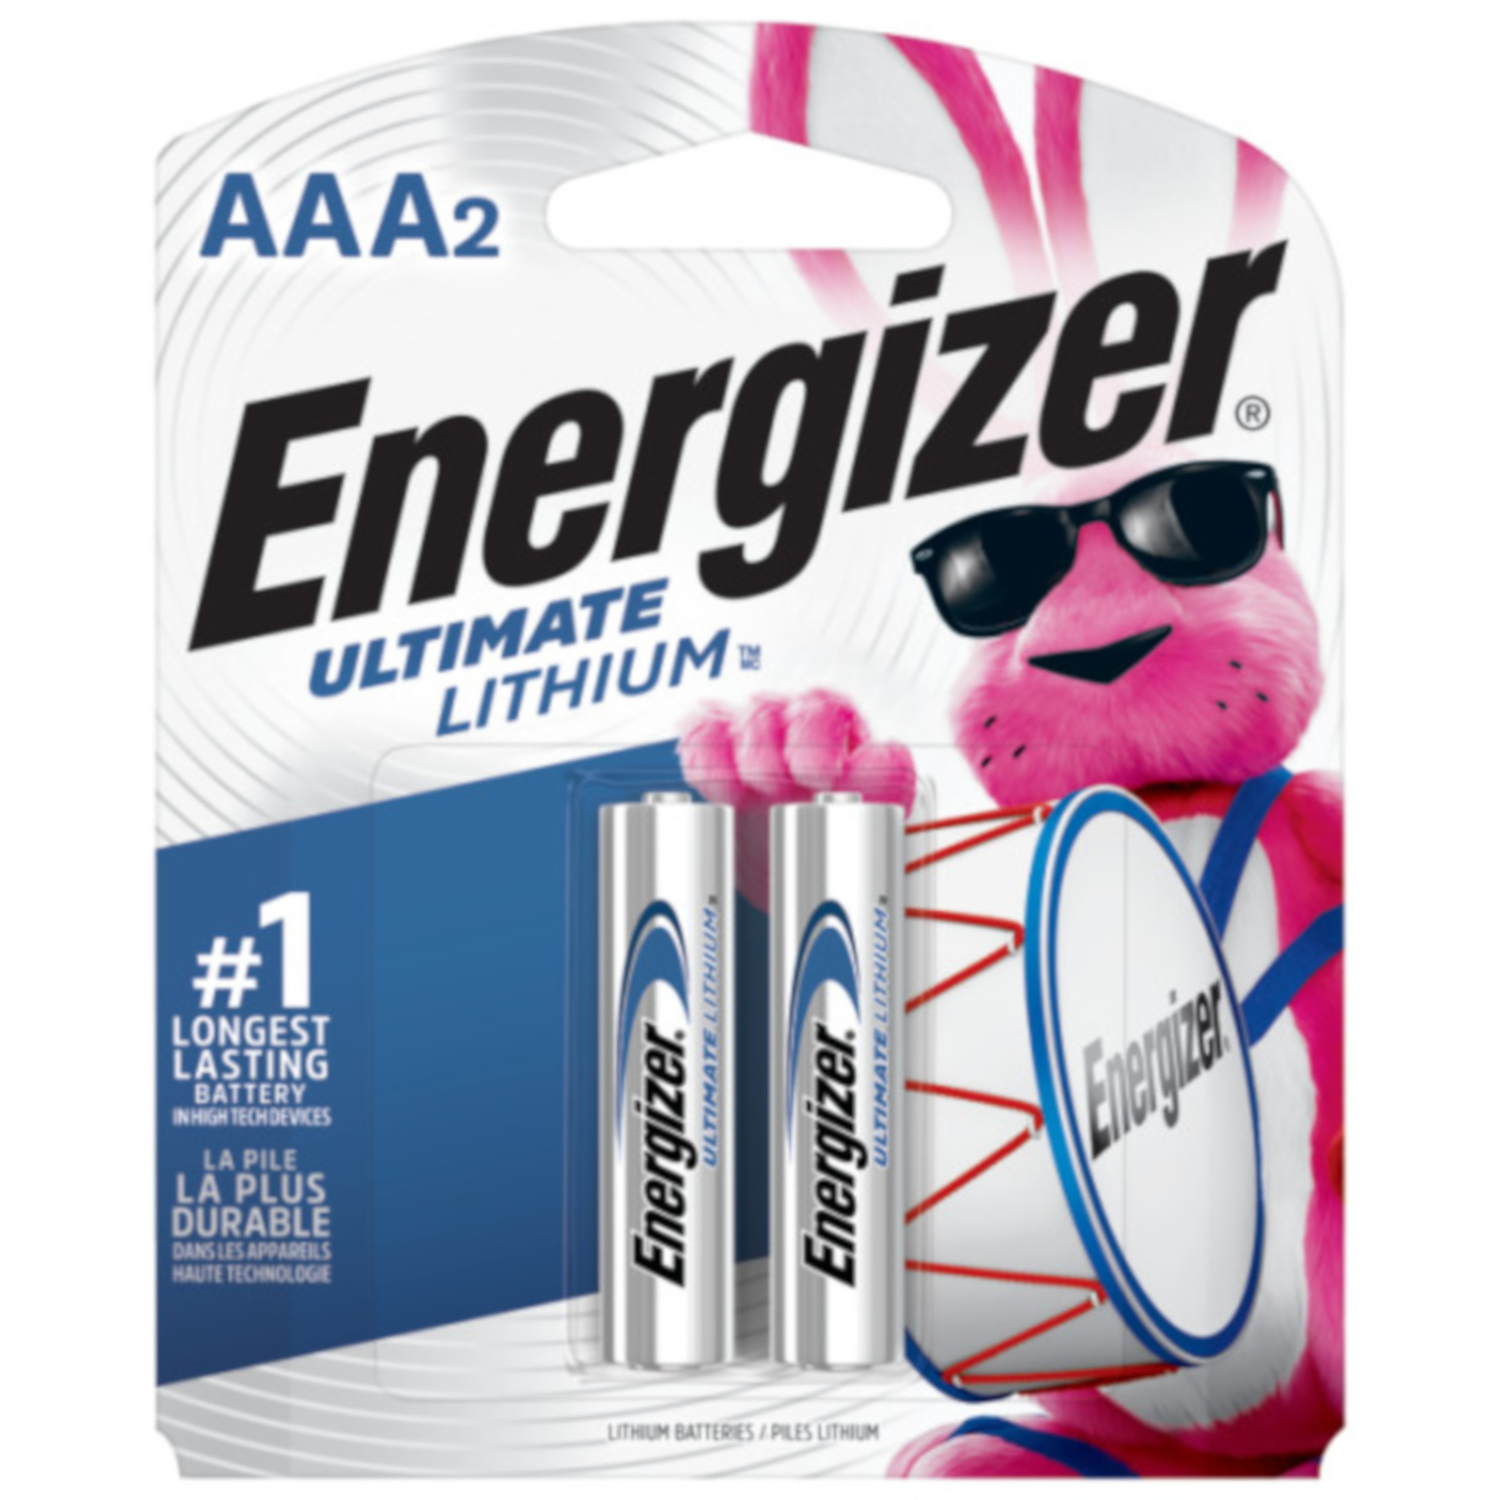 Energizer  Ultimate  AAA  Camera Battery  L92BP-2  2 pk Lithium